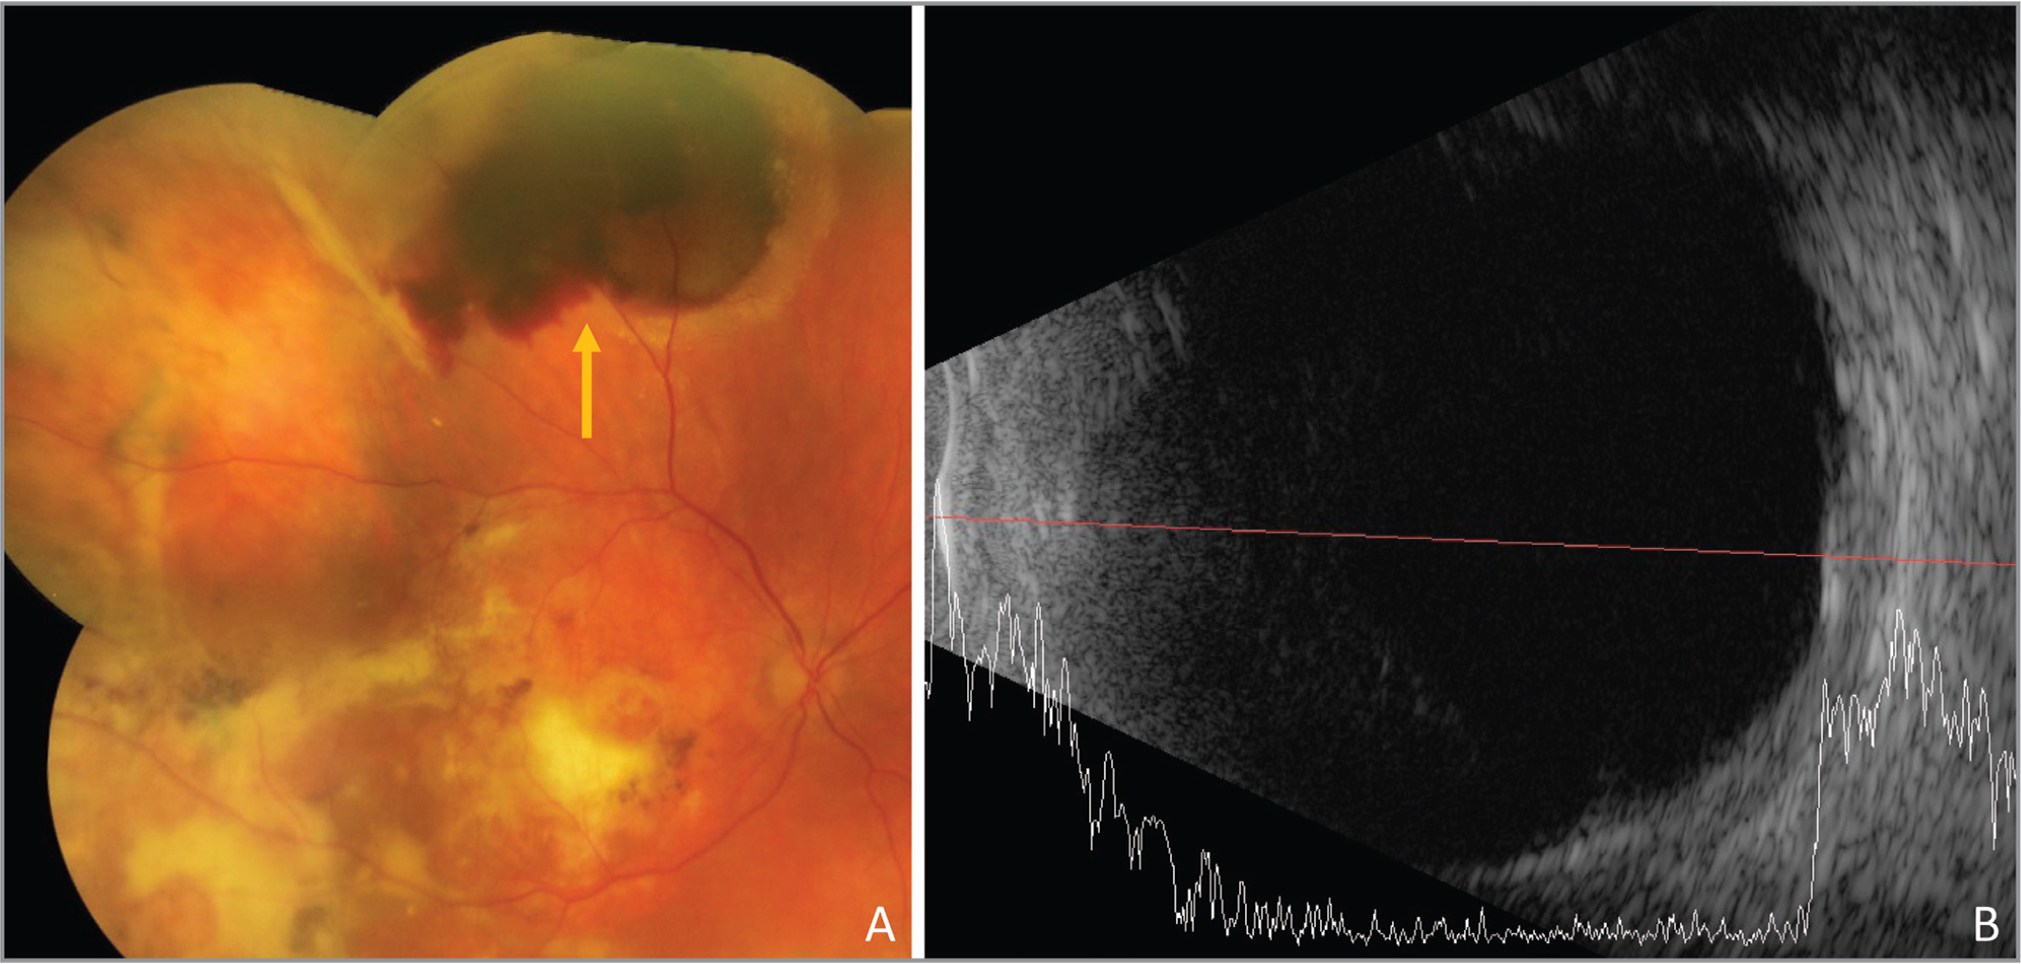 Peripheral exudative hemorrhagic chorioretinopathy (arrow) in an asymptomatic 92-year-old male with end-stage age-related macular degeneration (A). The A-scan showed a relatively flat subretinal lesion with high internal reflectivity (B).